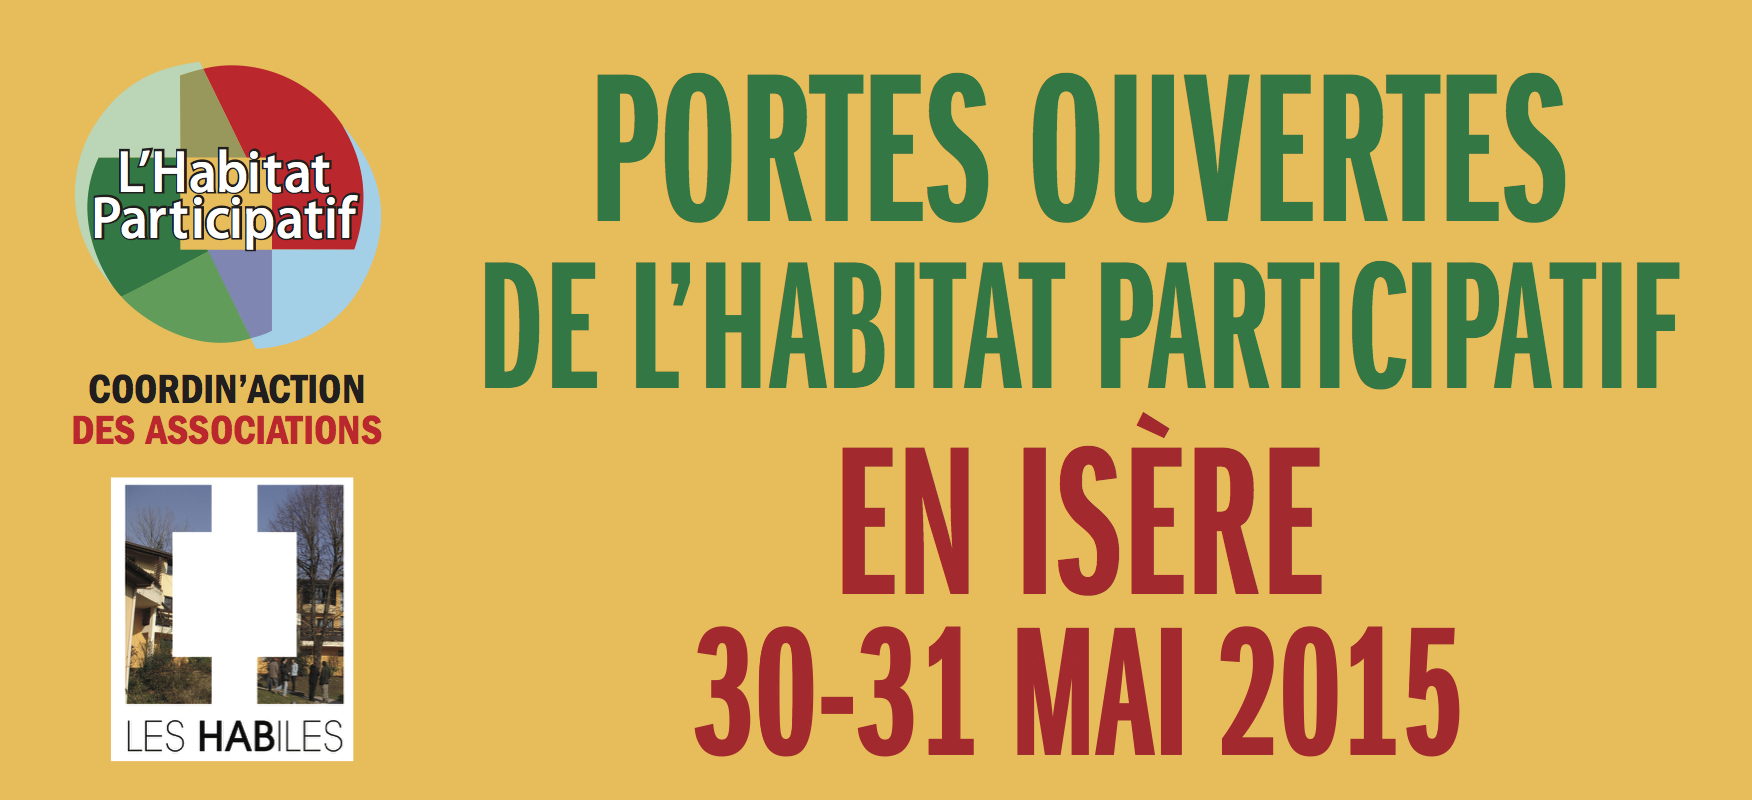 Rencontre nationale de l'habitat participatif grenoble